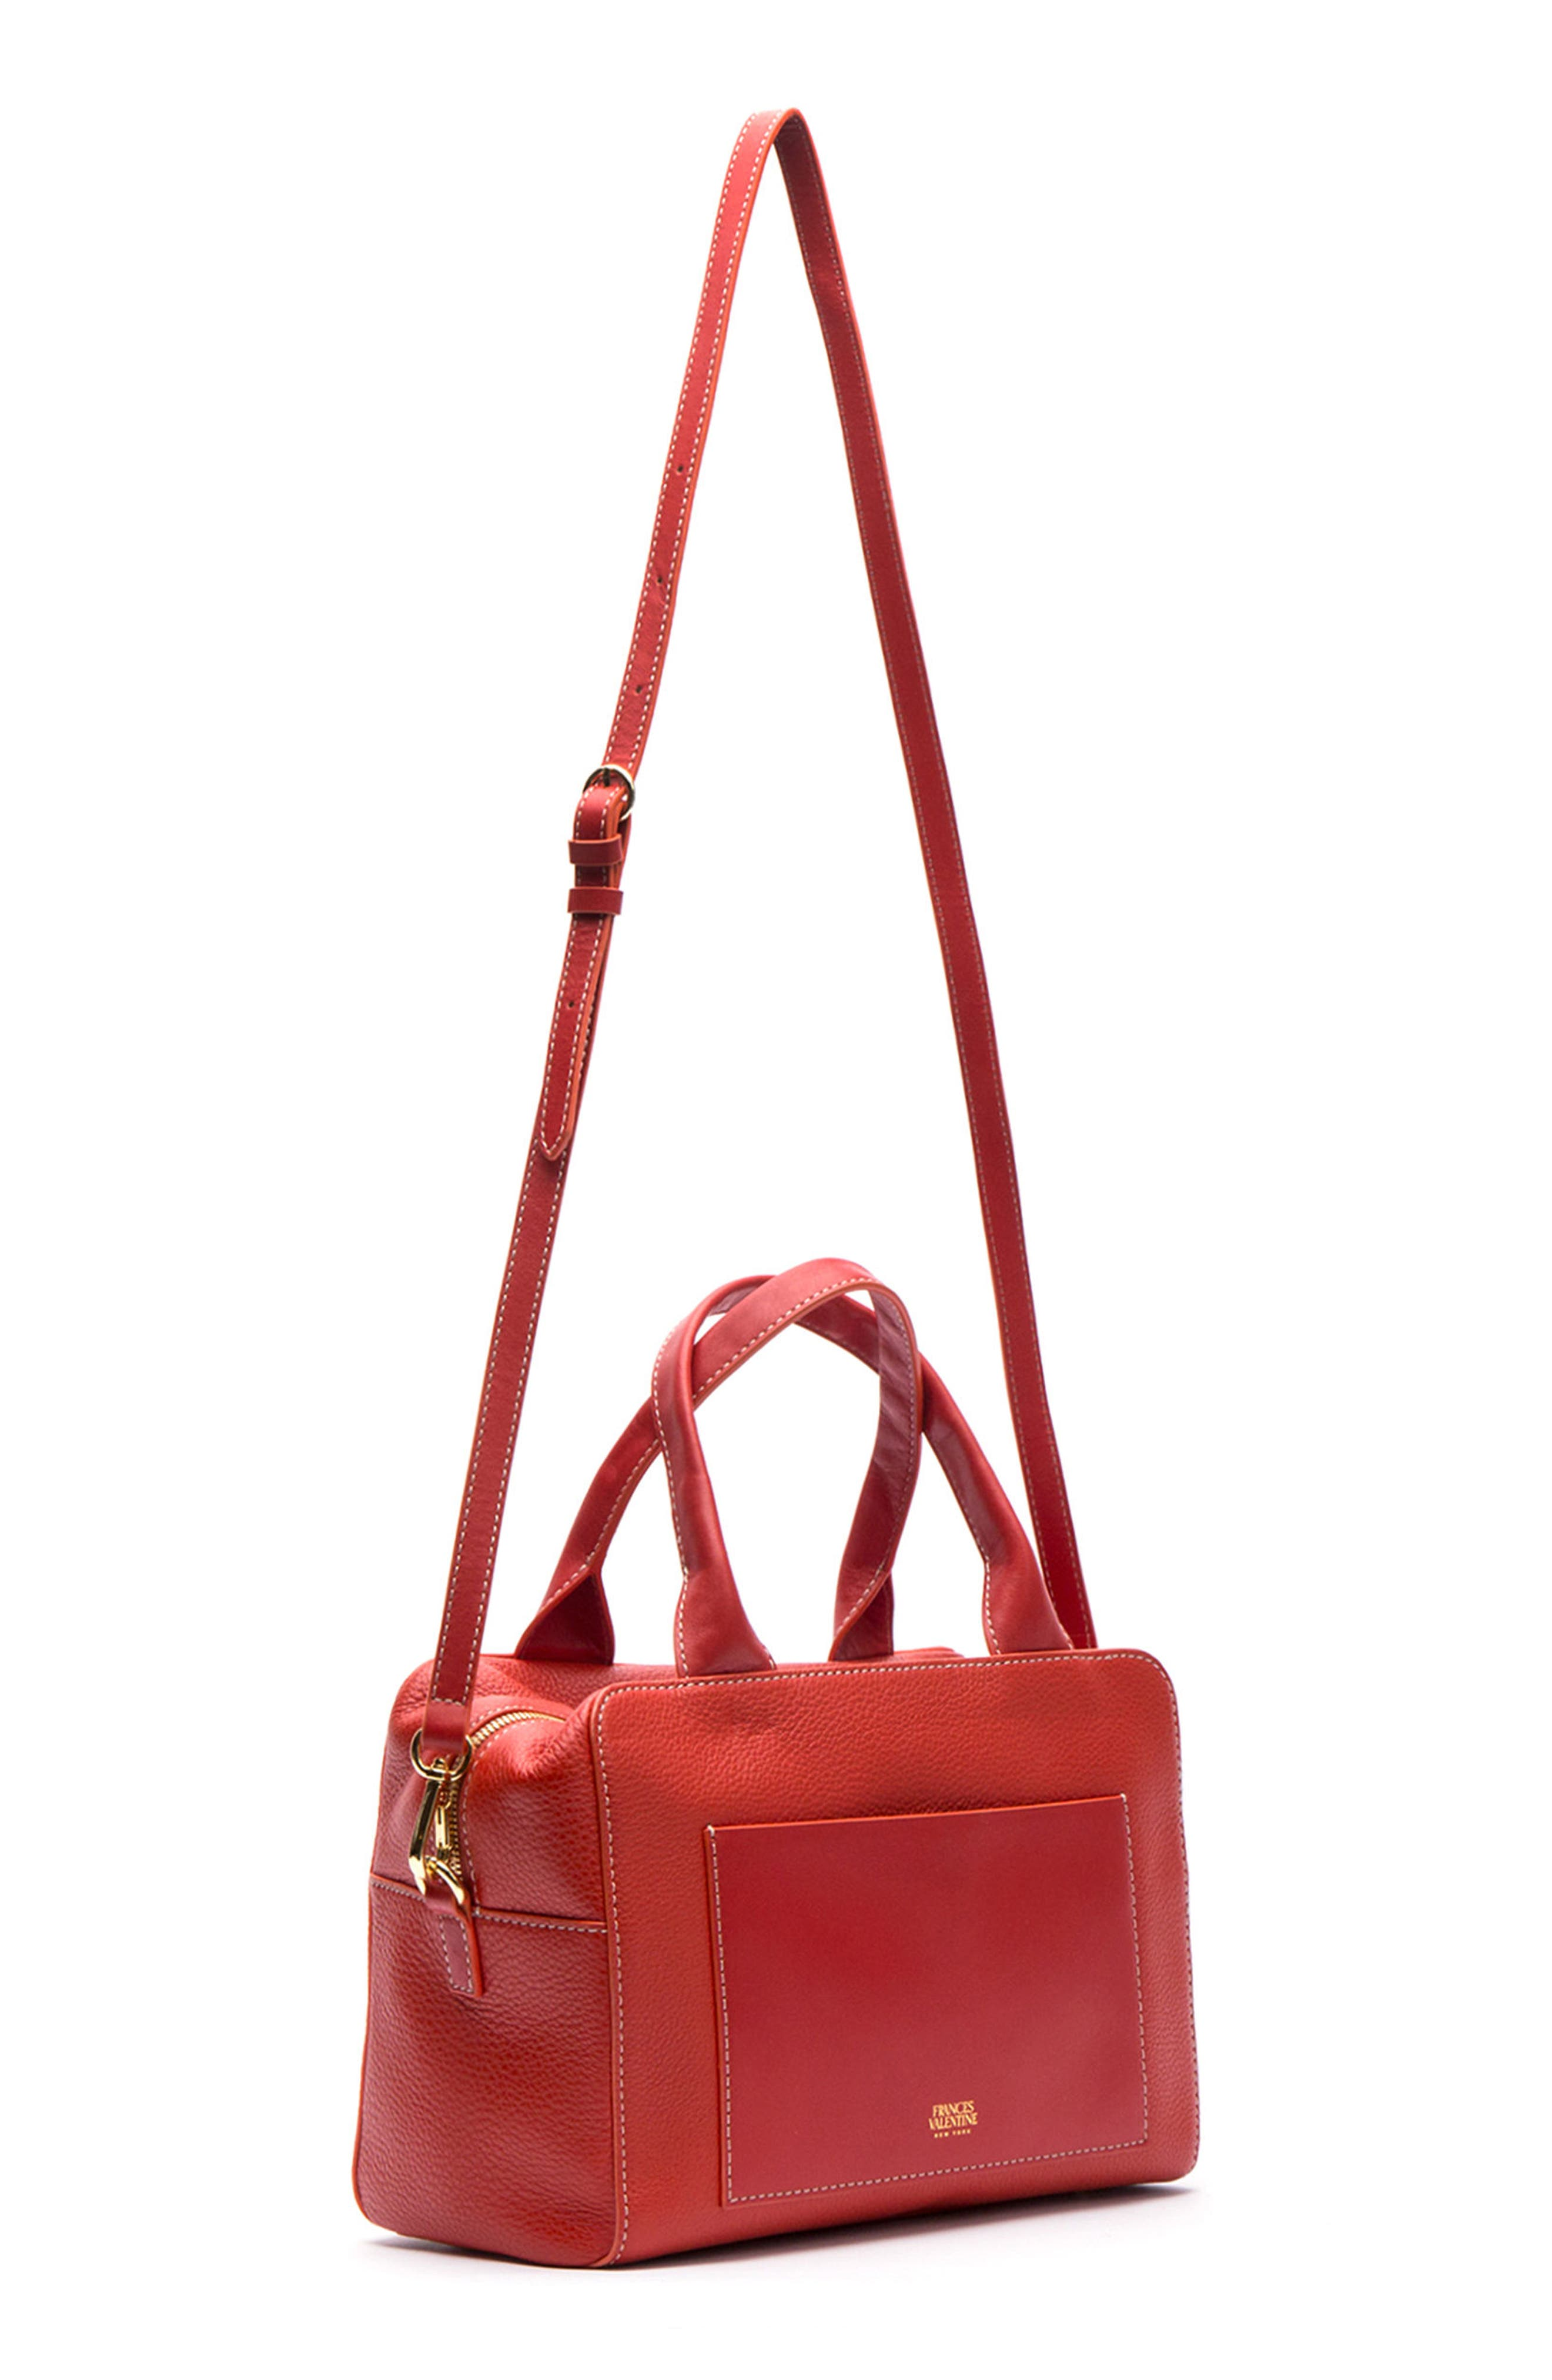 Medium Maddy Satchel,                             Alternate thumbnail 7, color,                             Coral